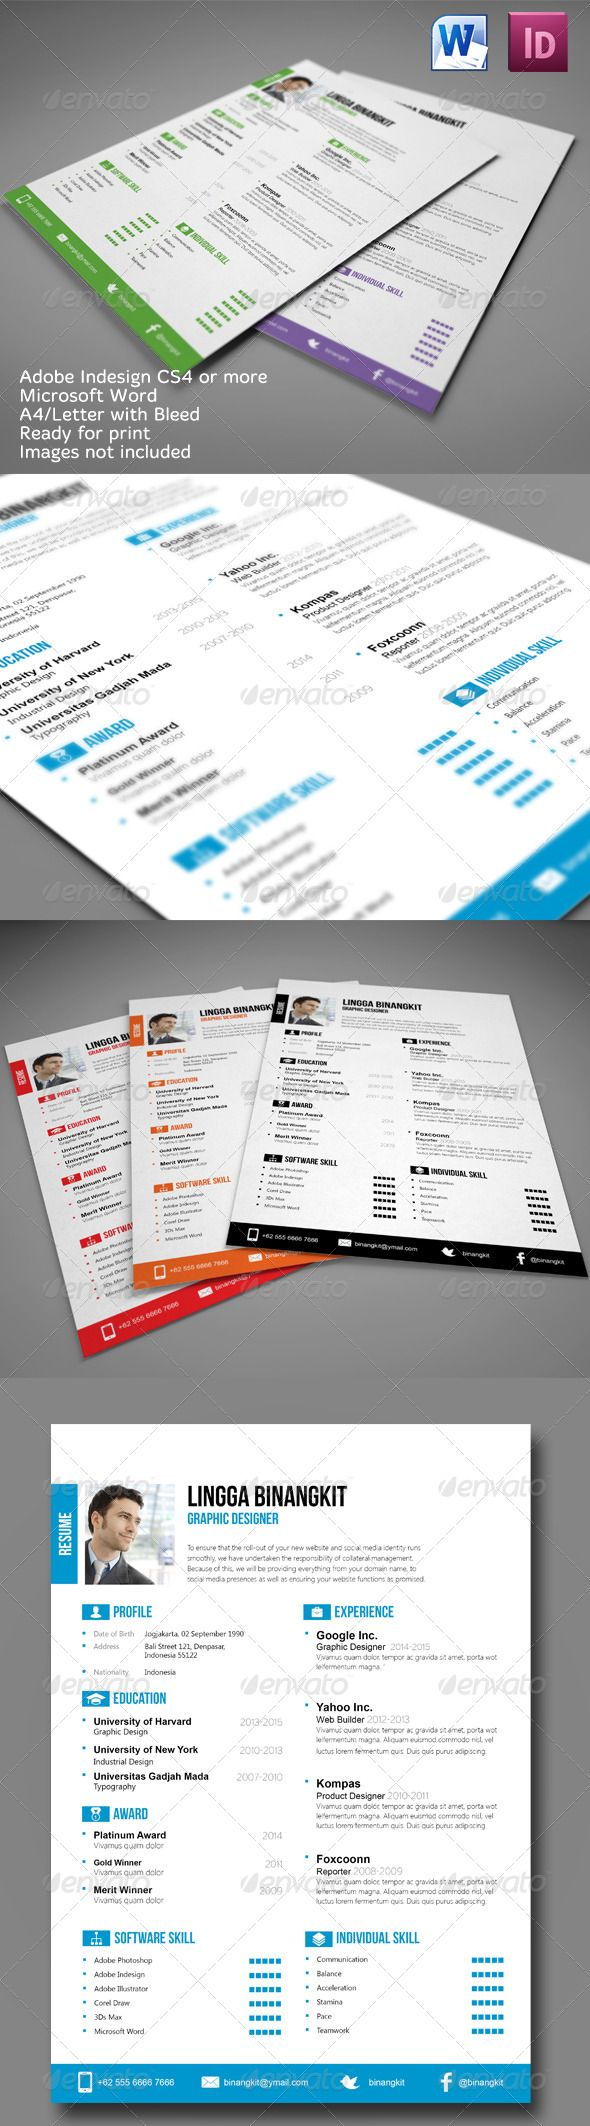 Free infographic resume template indesign